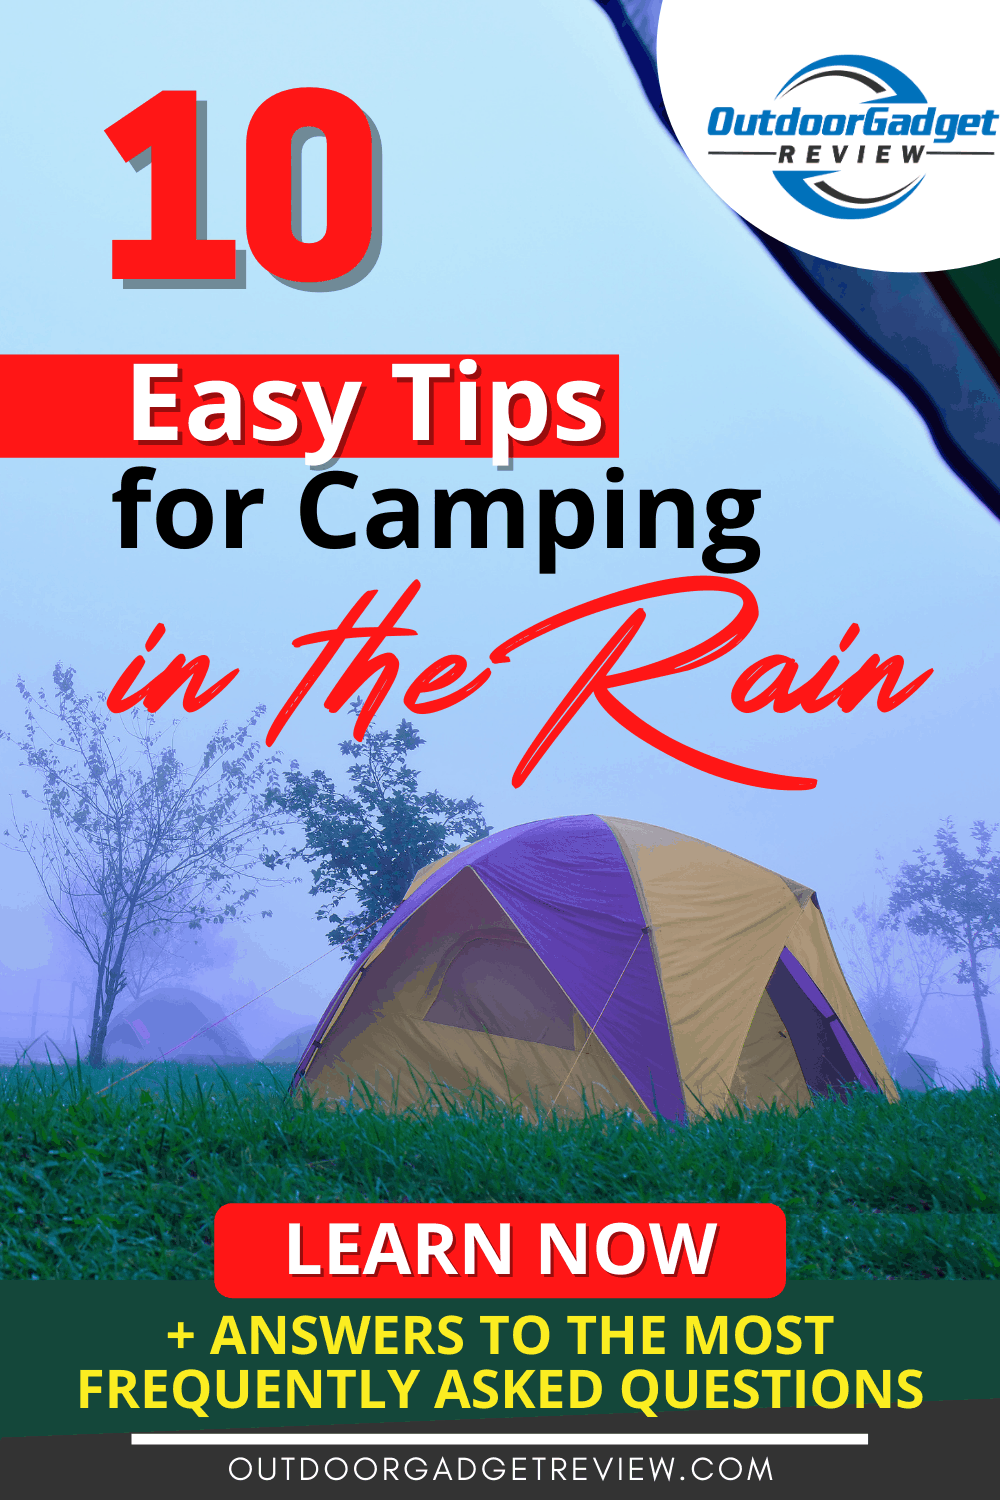 Camping in The Rain - Top Tips & FAQs